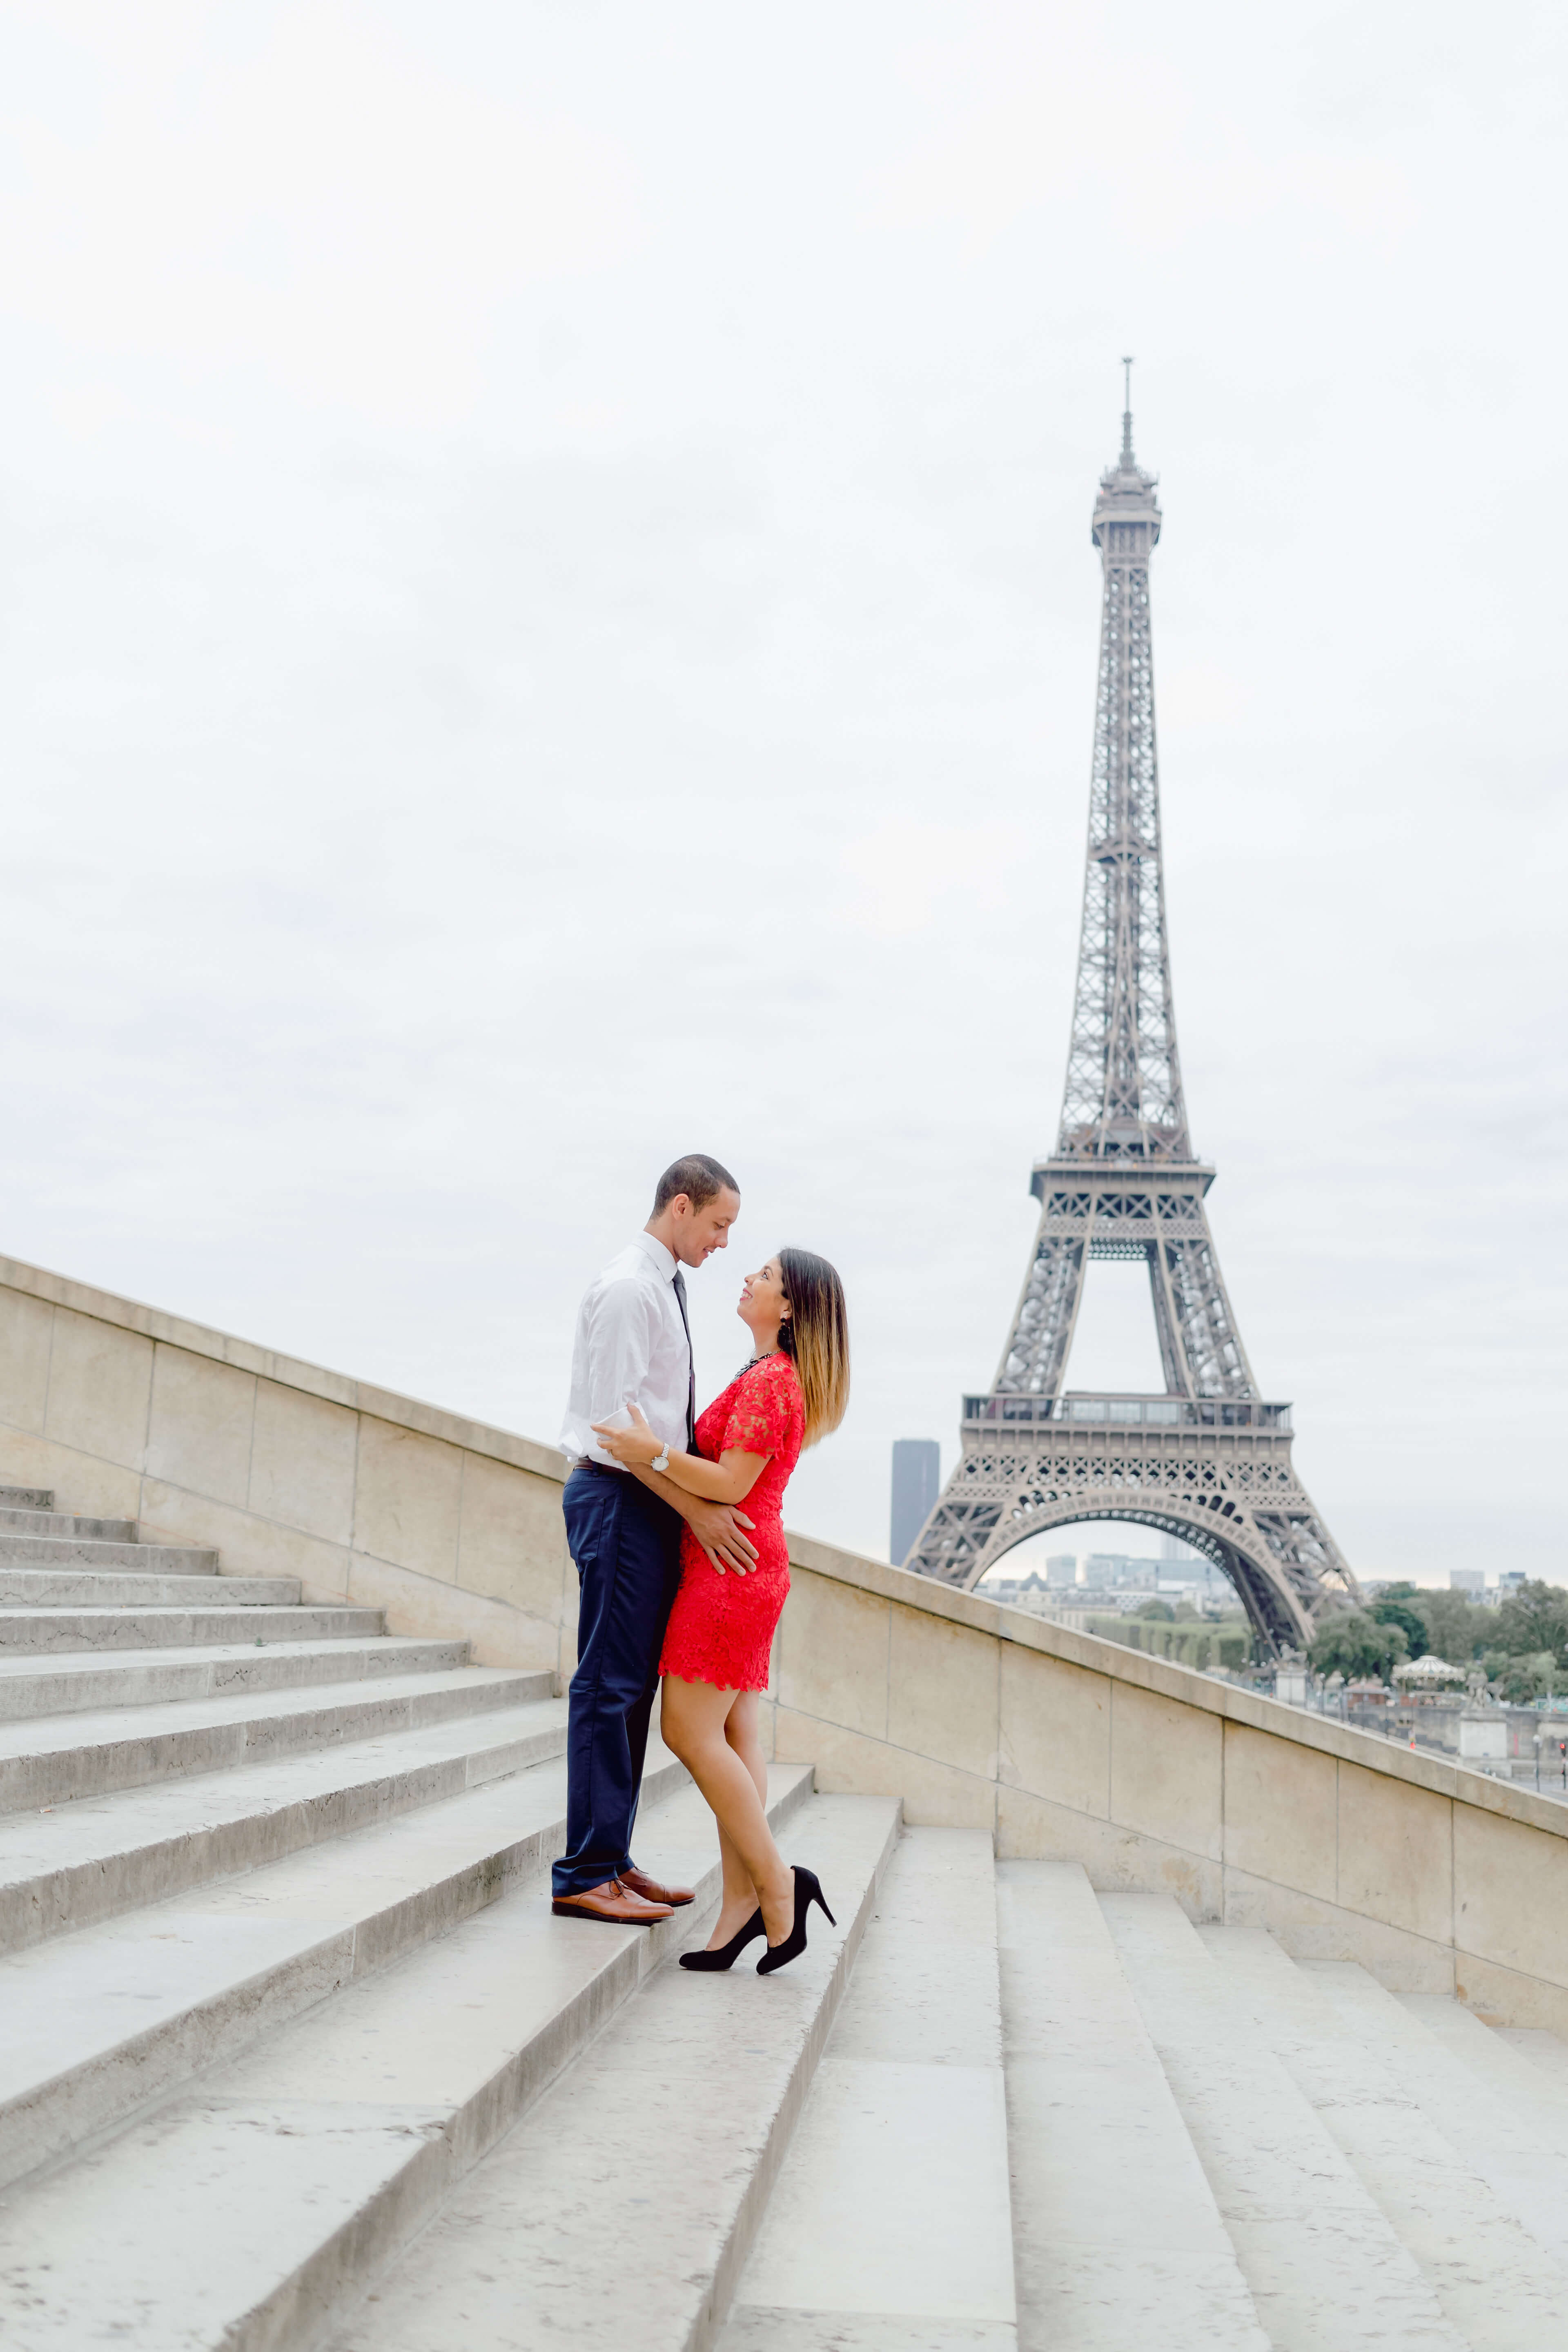 Couple in love on the steps in front of the Eiffel Tower